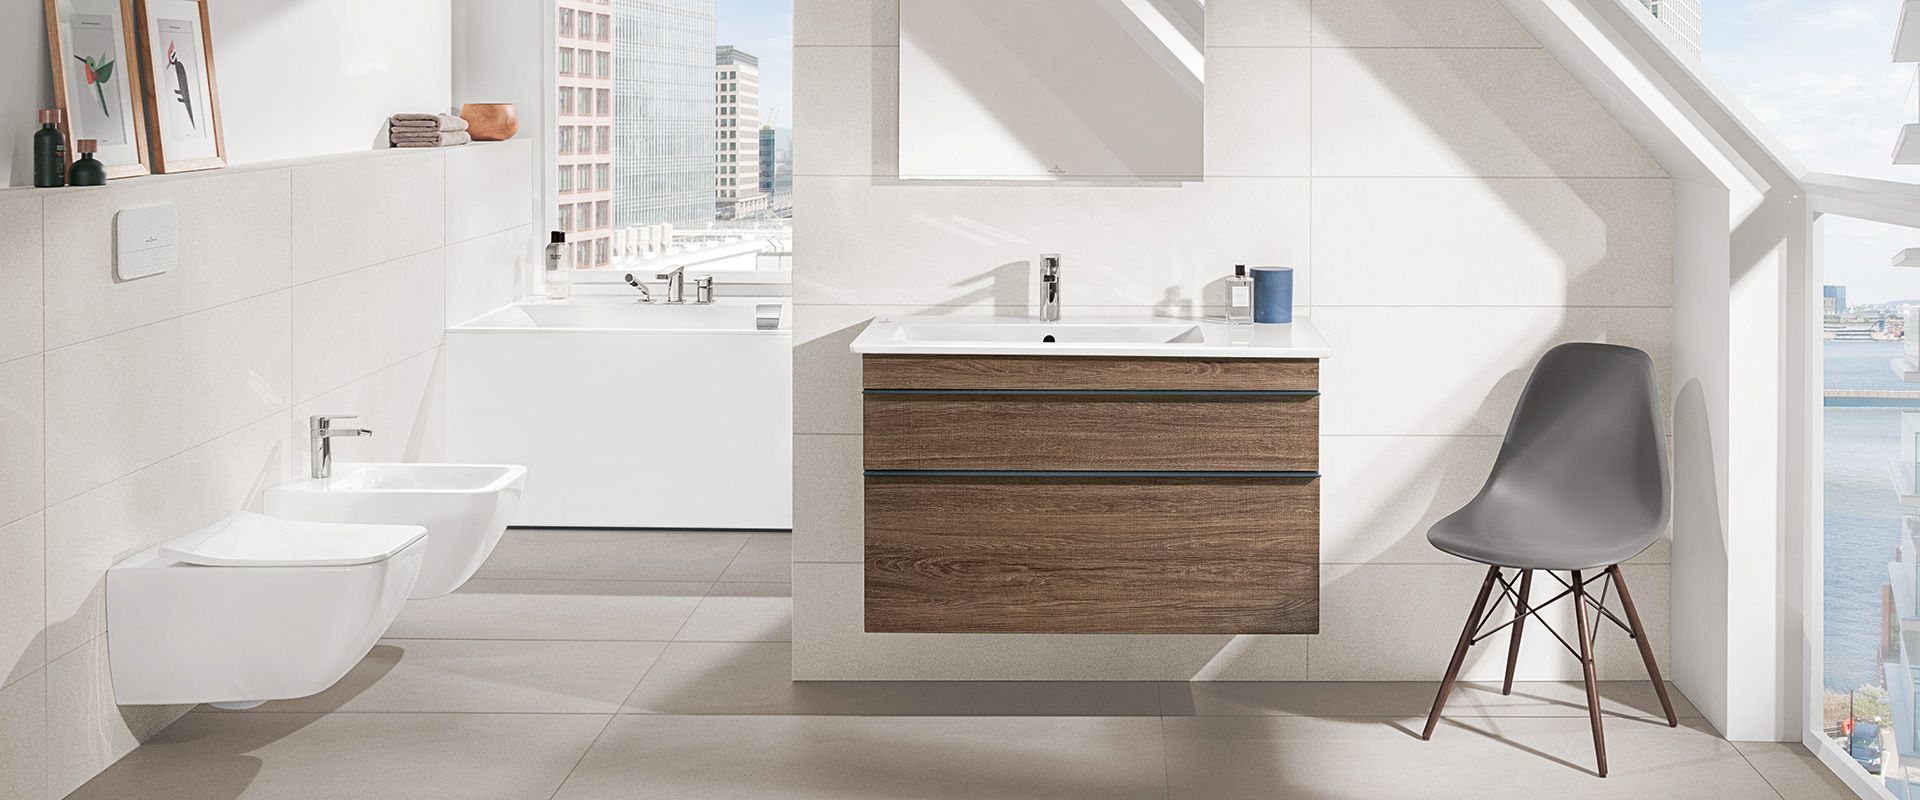 New Bathroom Collection U0027Venticellou0027   Modern And Slim Design    Sophisticated Innovation Made In Germany   1748 Villeroy U0026 Boch #villeroy  #villeroyundboch ...